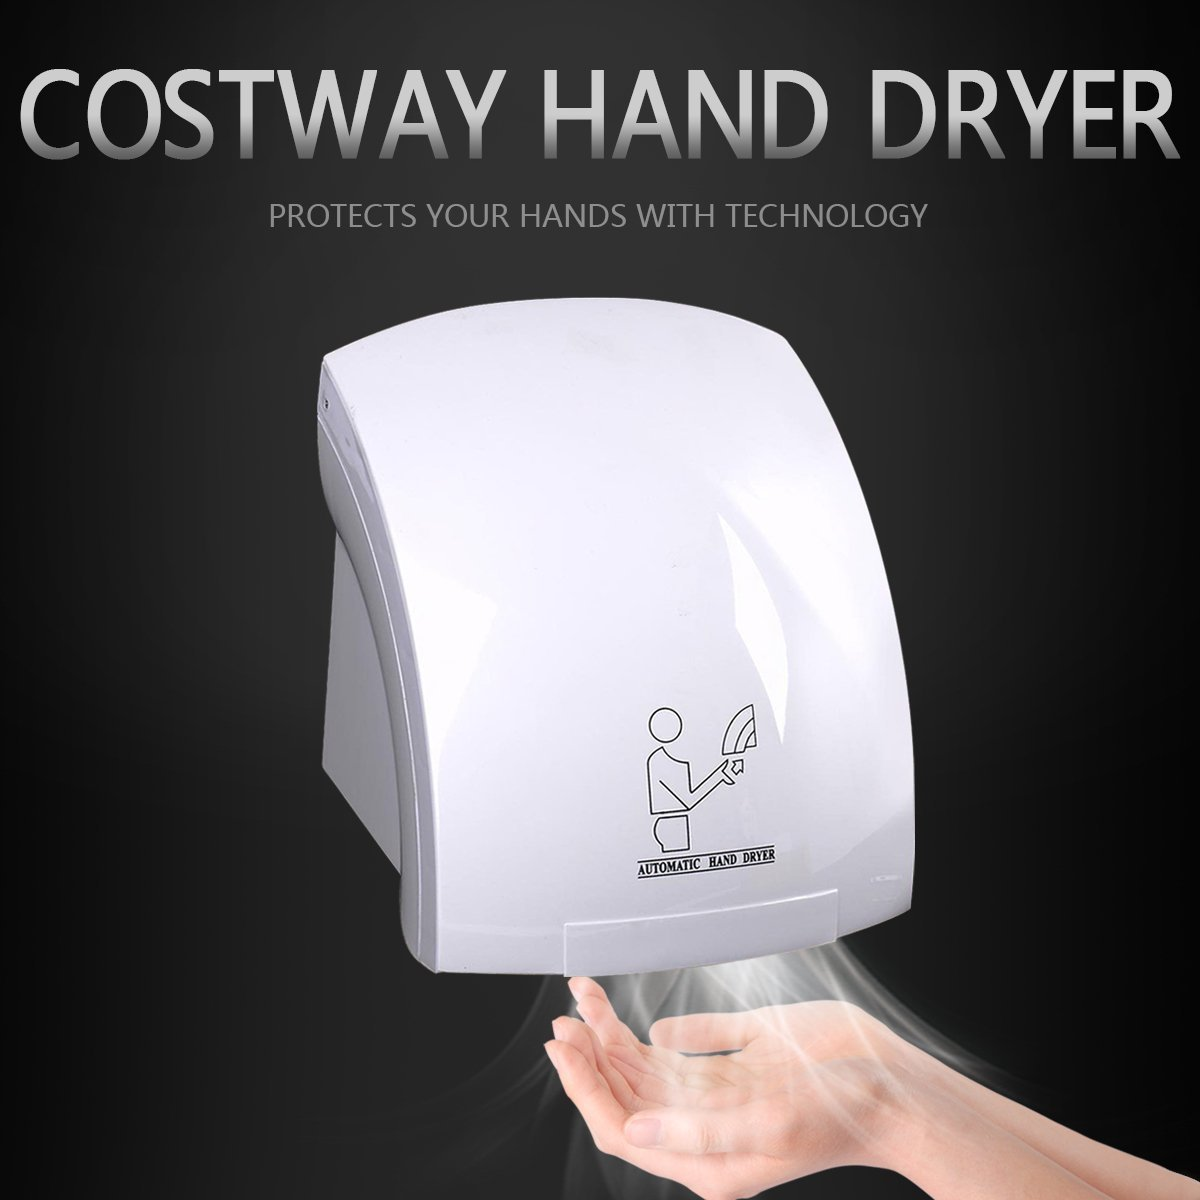 Costway Hand Dryer Wall Mounted Fast Electric Automatic Warm Air Drier Heavy Duty Toilet White